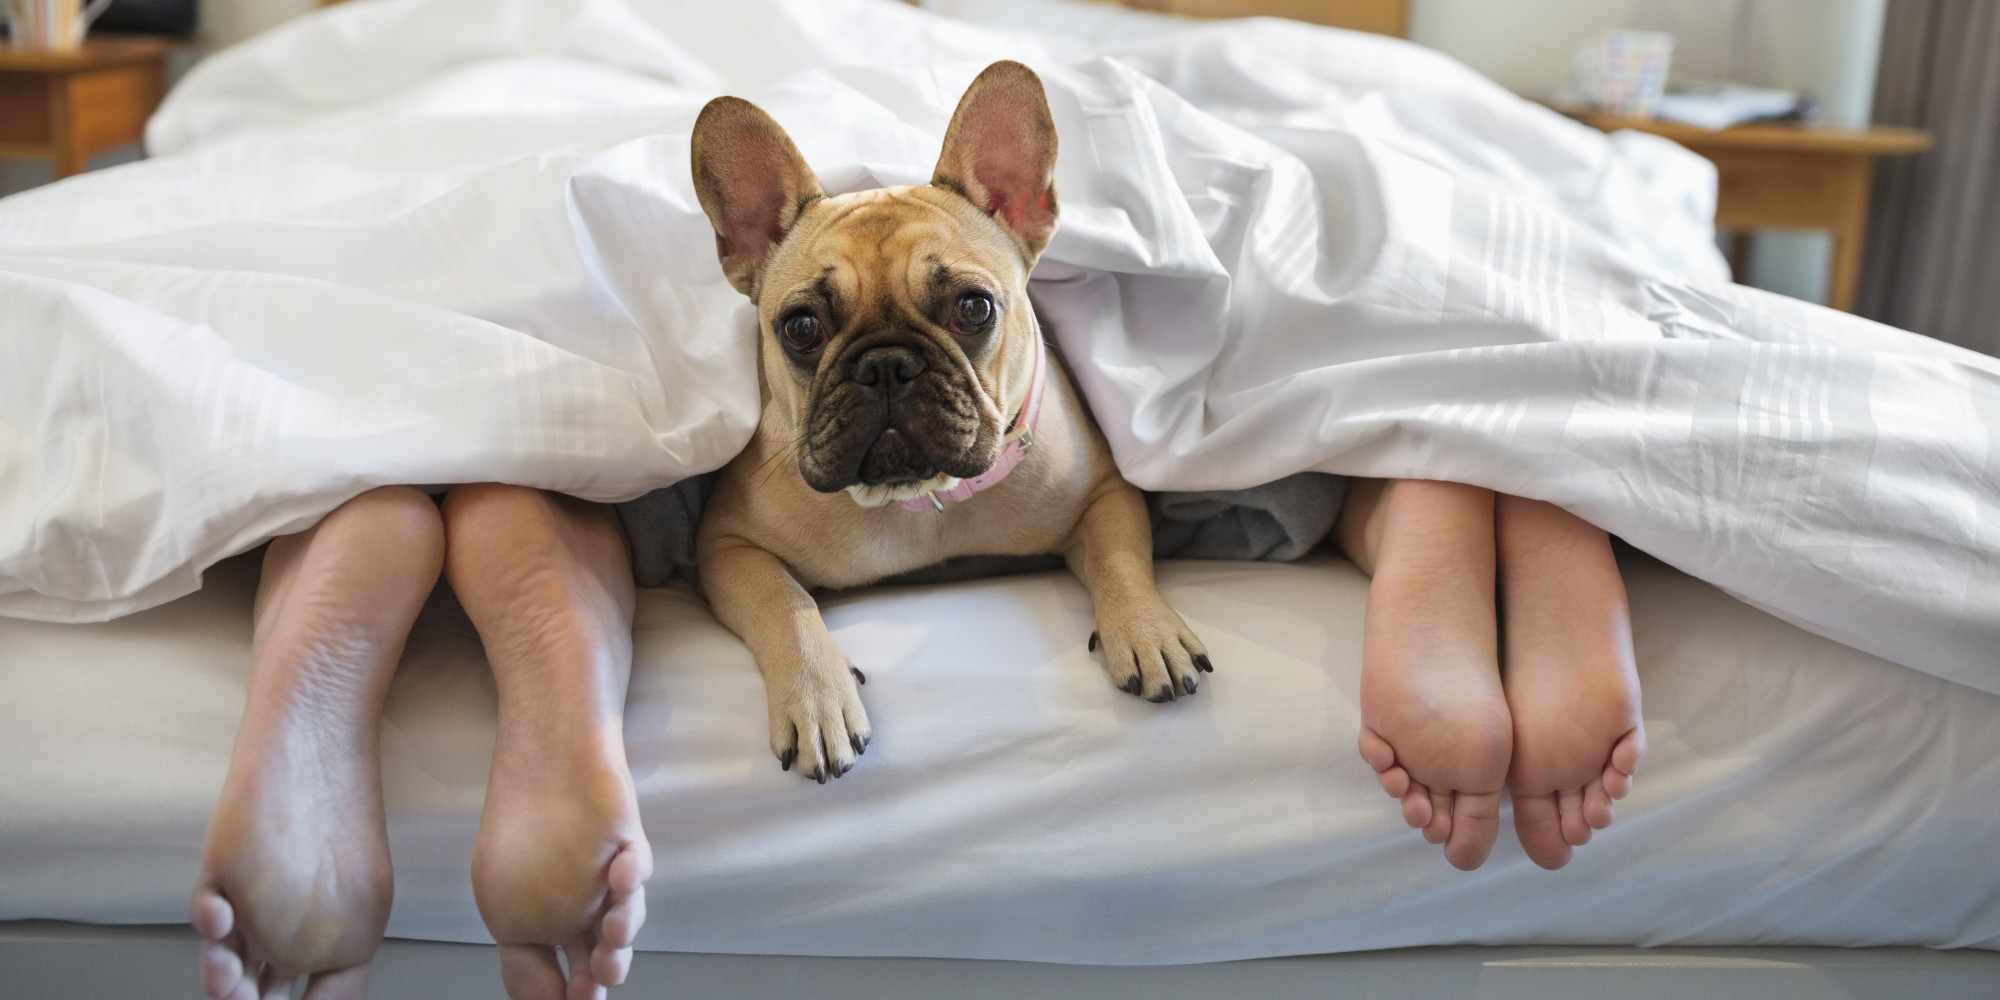 New Research Shows That Sleeping With Your Dog is A Bad Idea